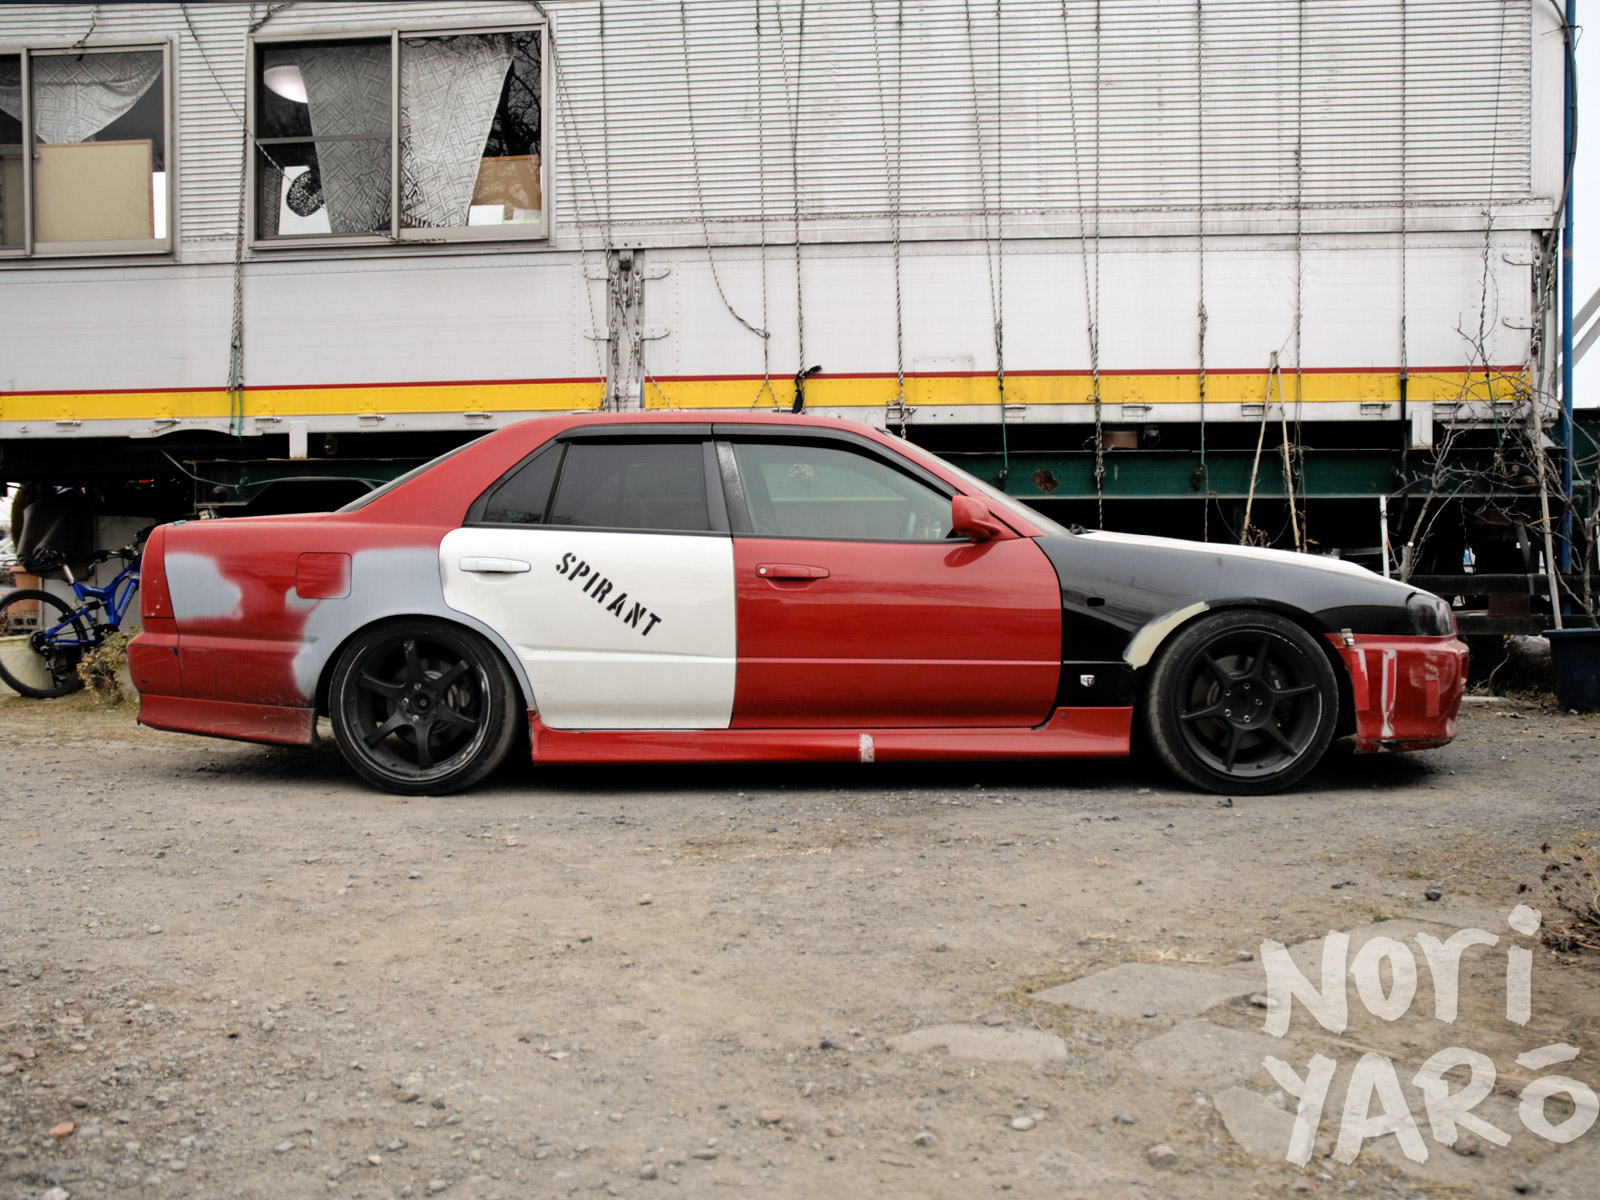 Sick Wallpapers For Iphone 6 Wallpaper Wednesday Fool Jzx90 At Tsukuba And Spirant R34